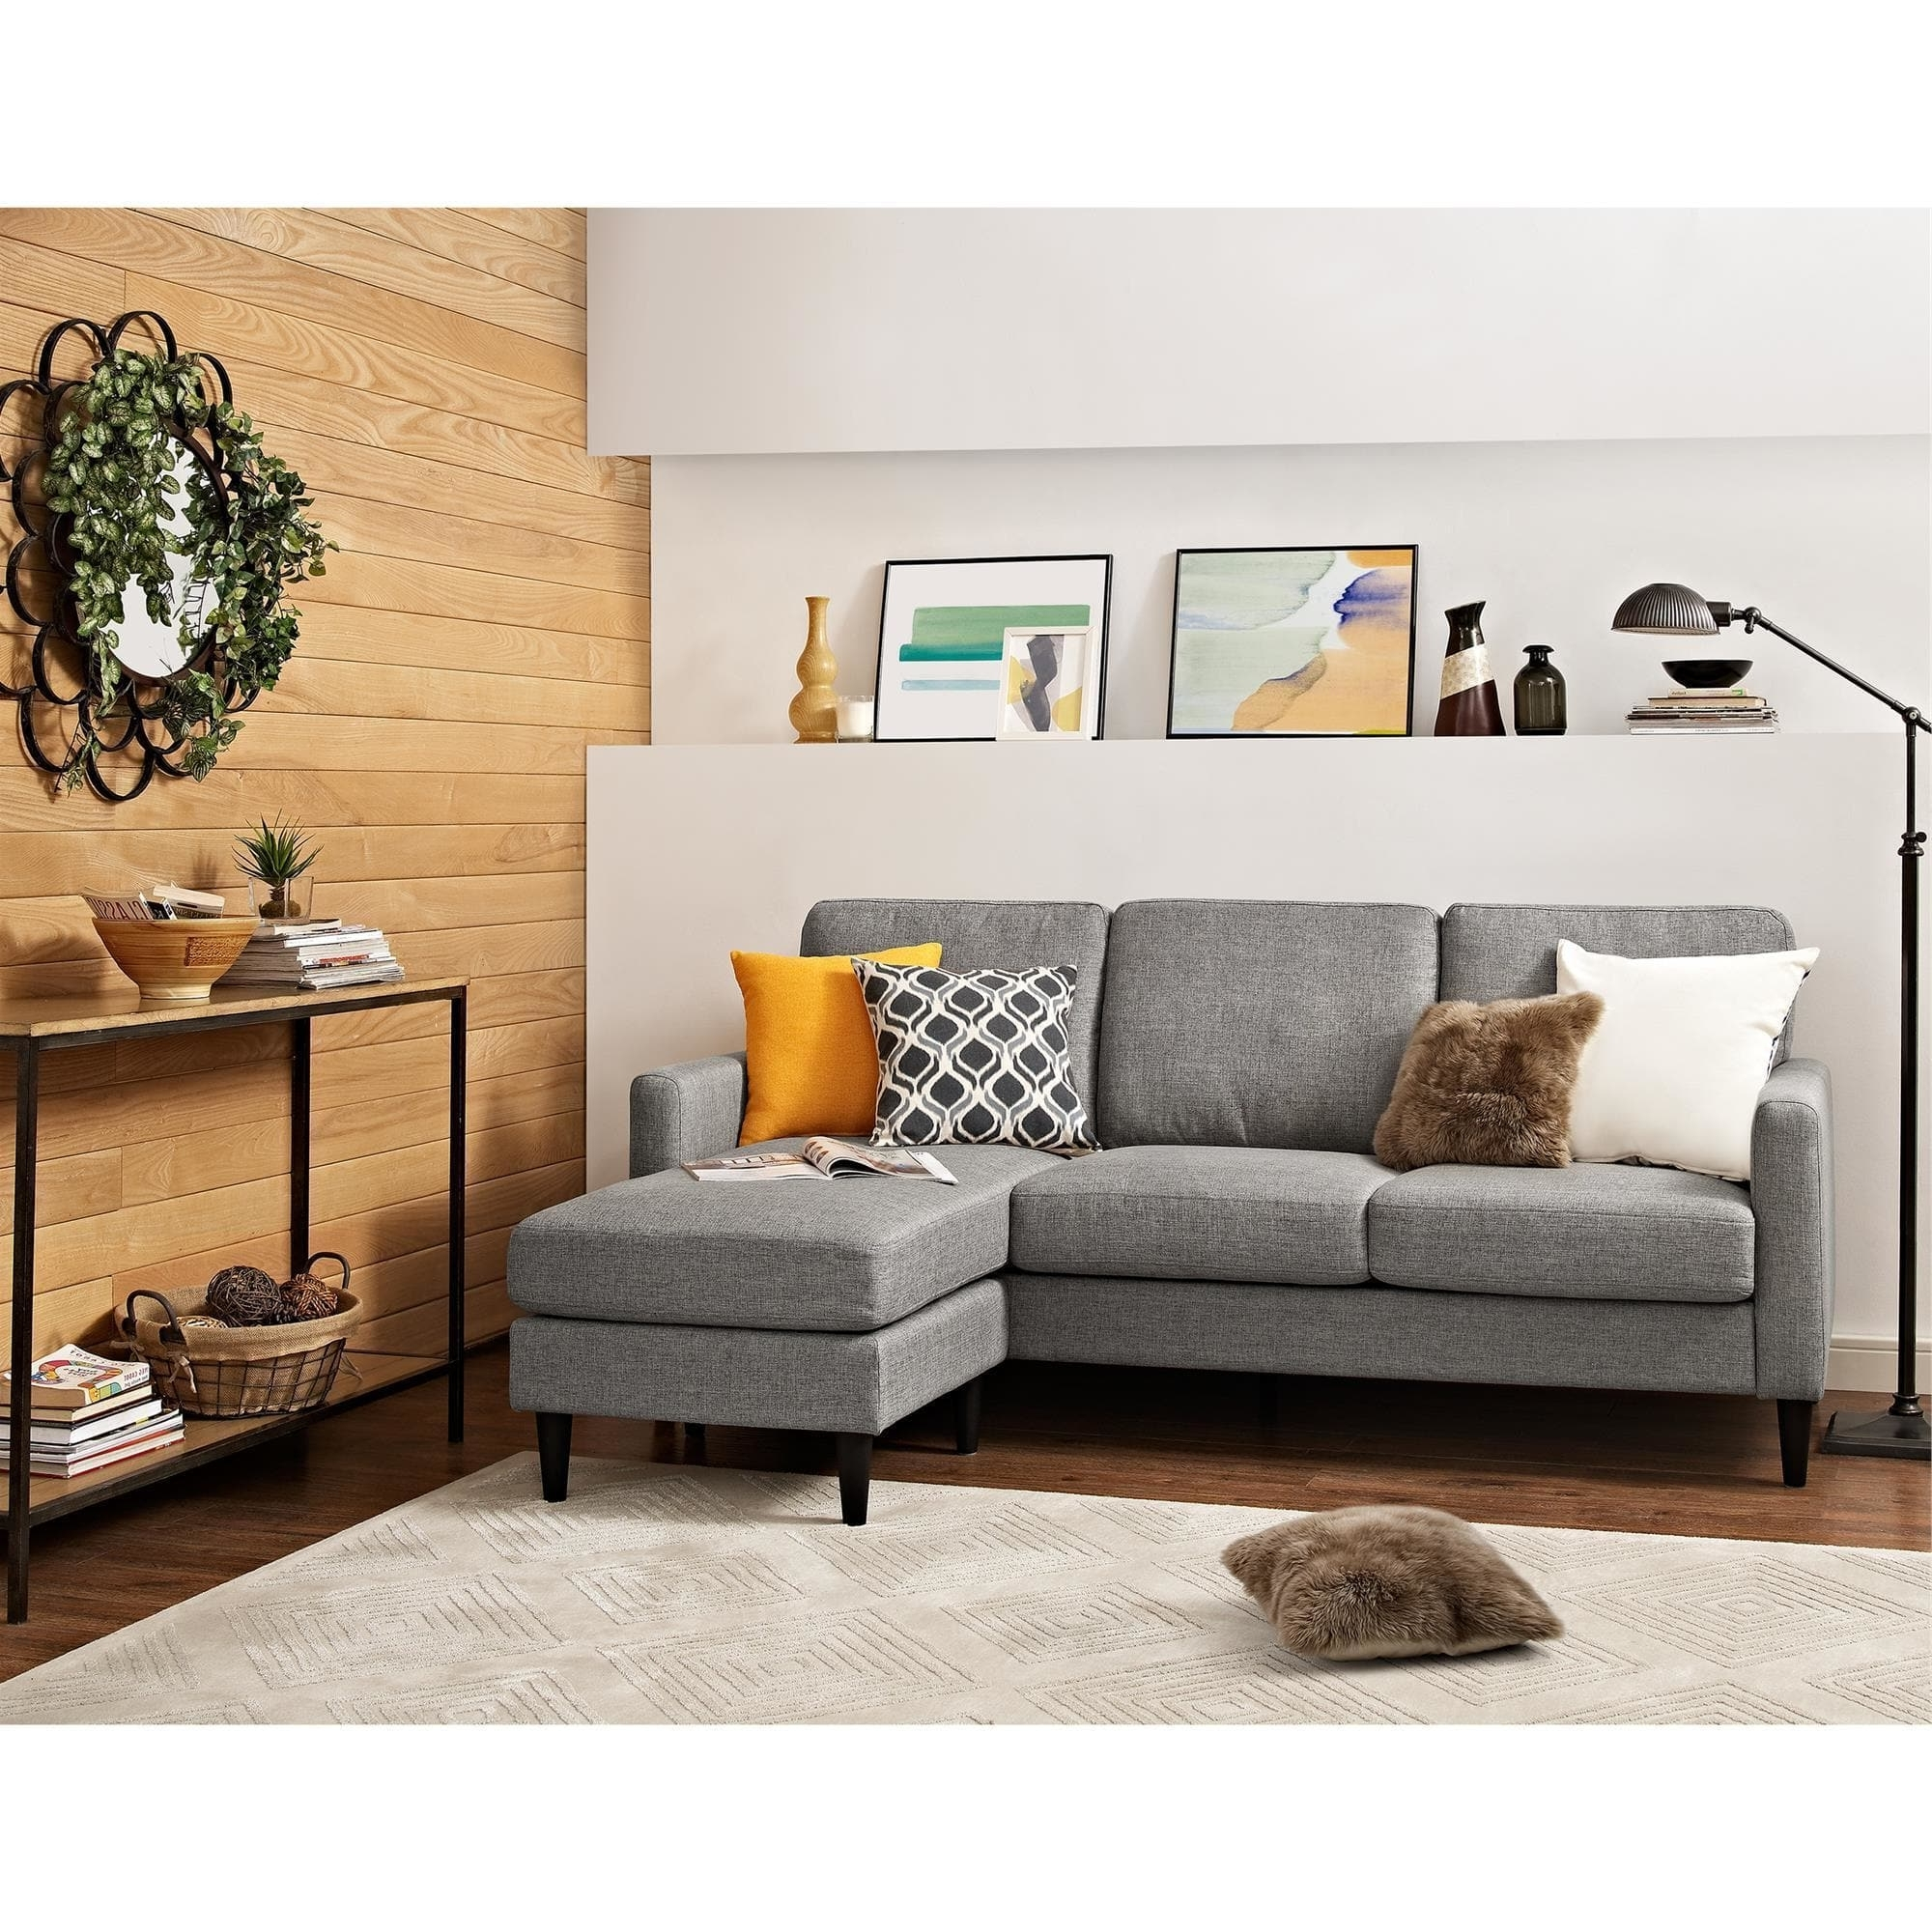 Current Overstock Sectional Sofas For Dorel Living Kaci Grey Sectional Sofa – Free Shipping On Orders (View 3 of 15)